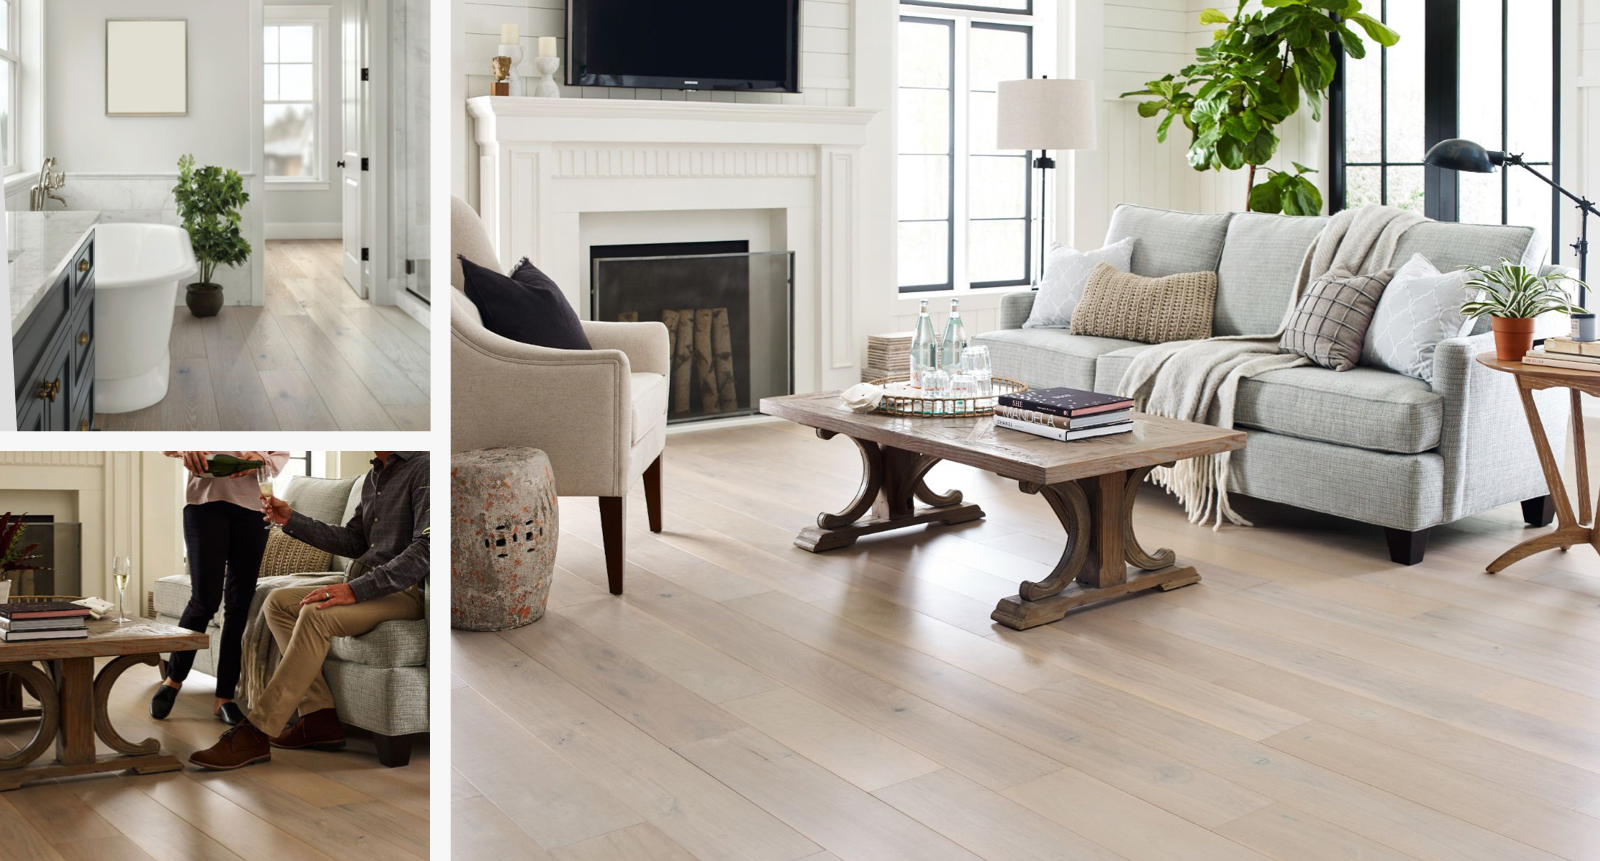 Floorte waterproof hardwood flooring for your home | Payless Design Center